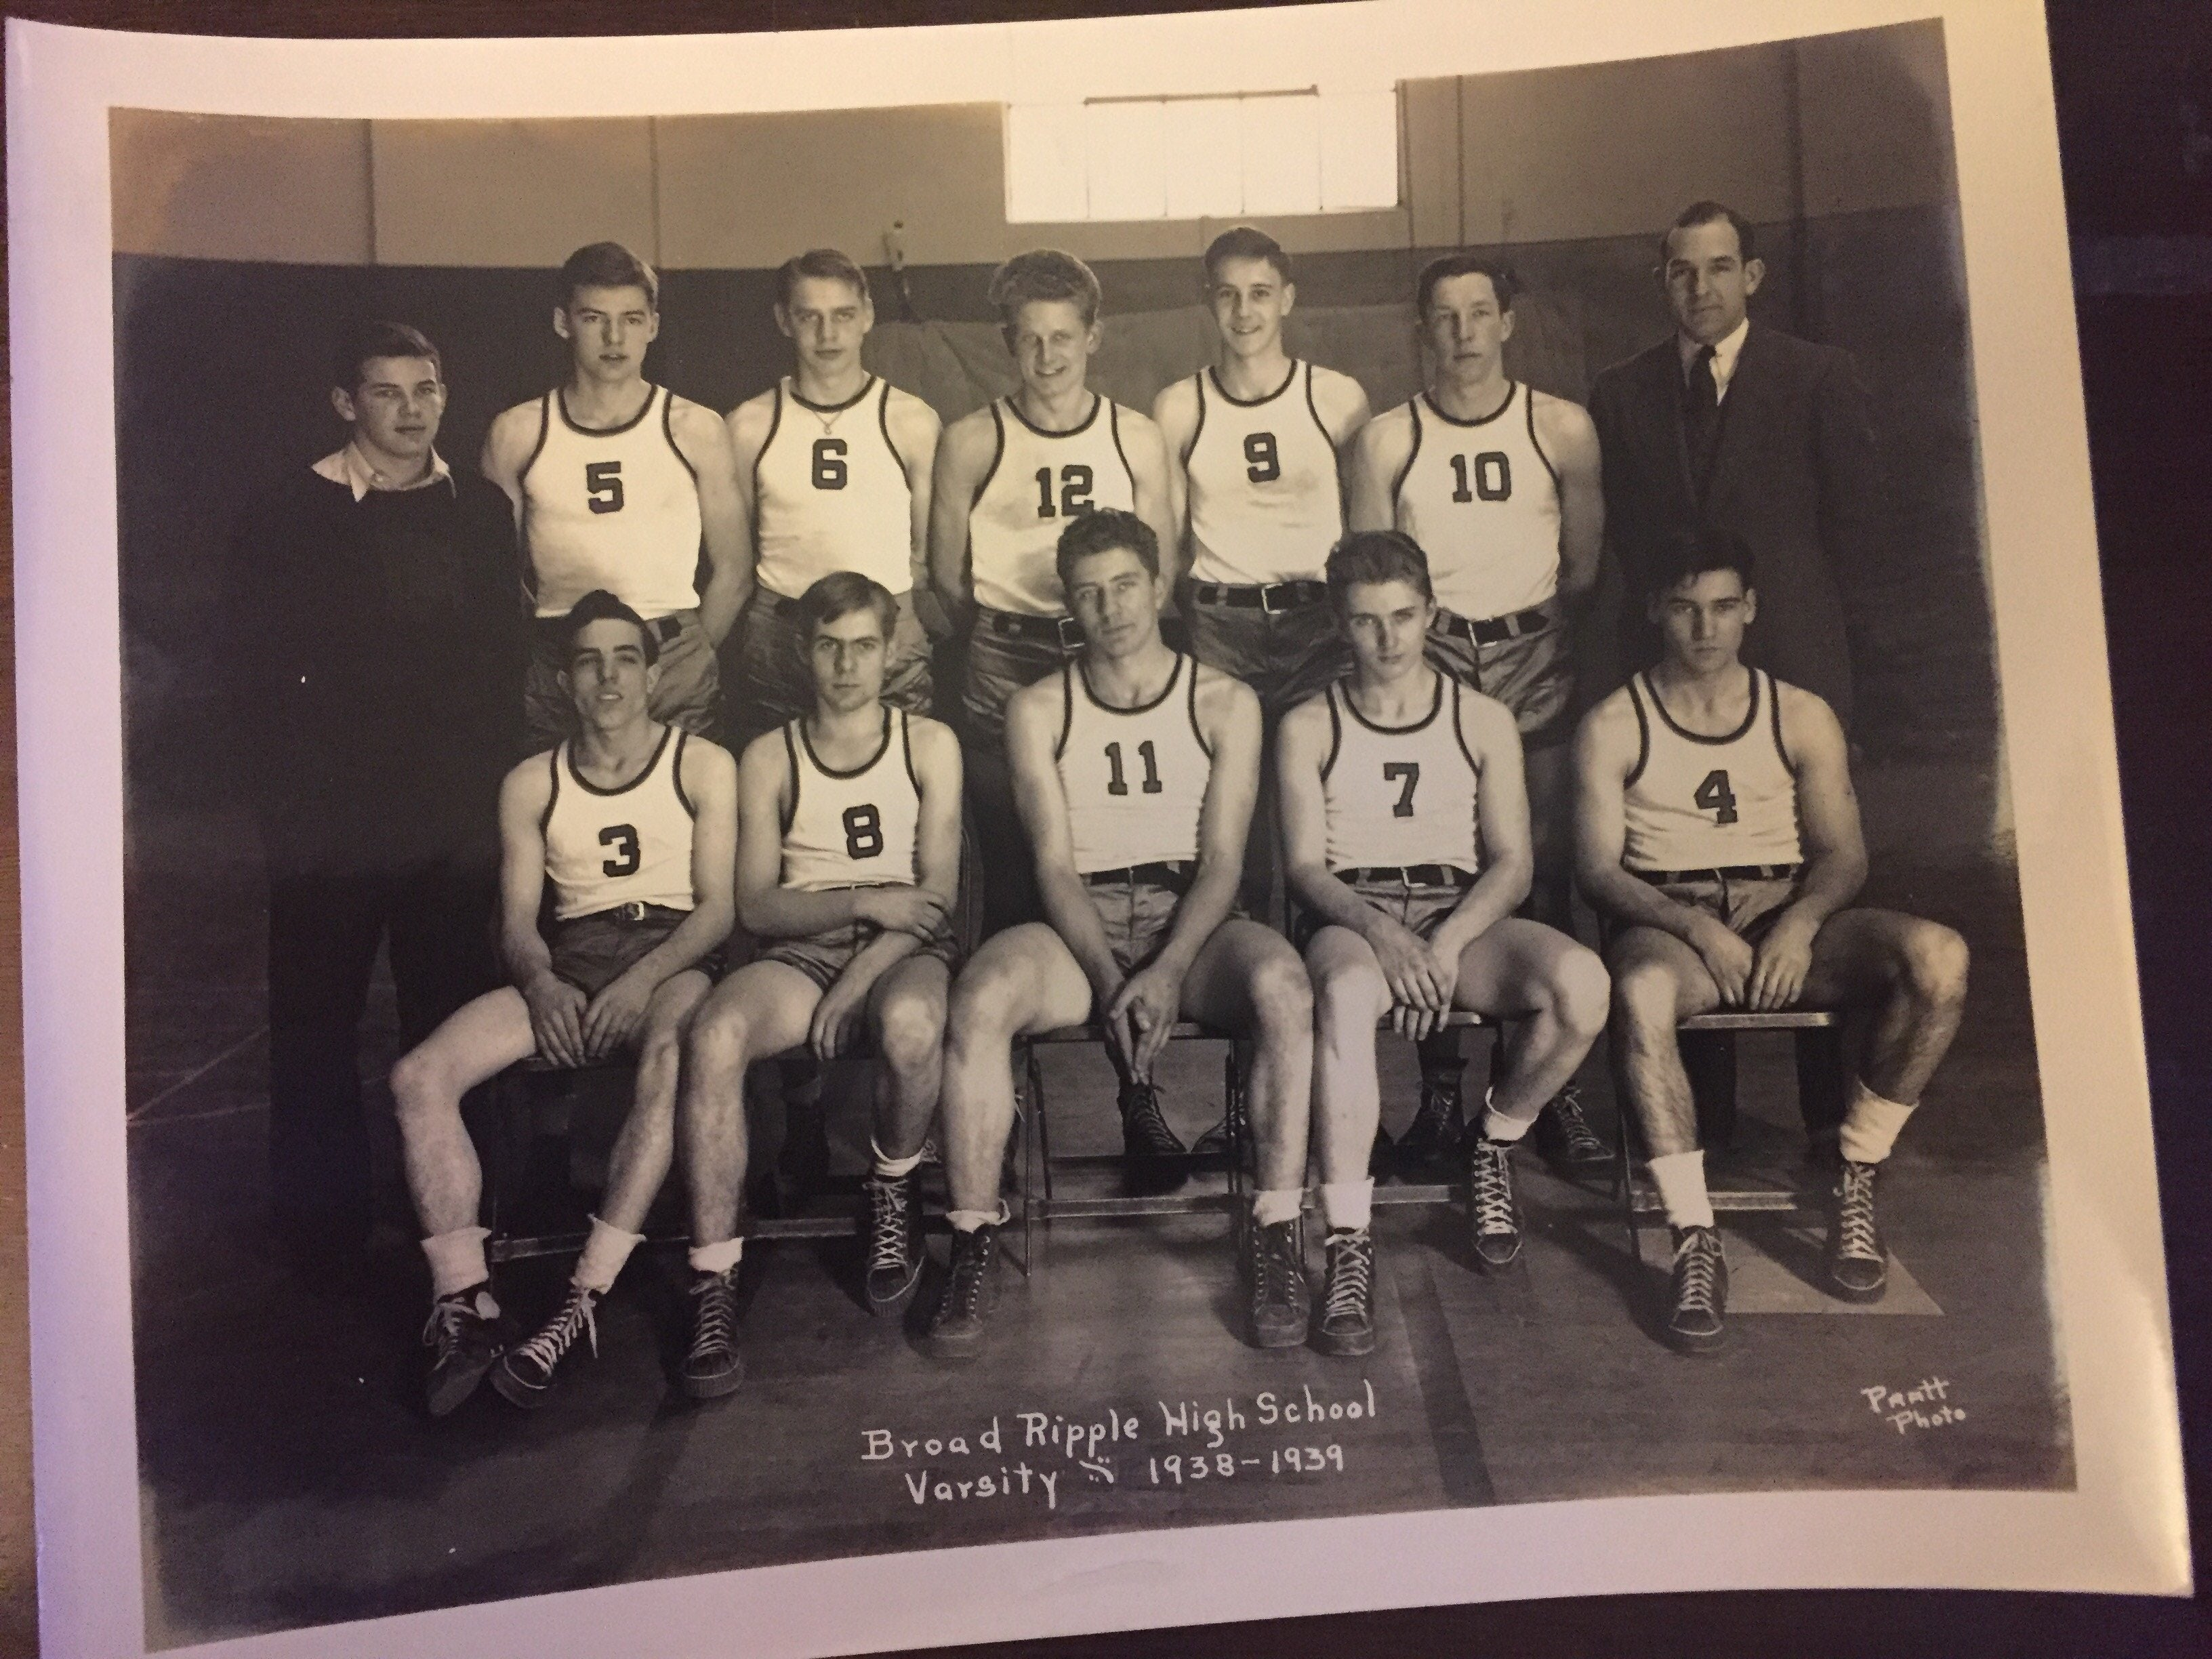 1938-39 Broad Ripple, Indiana High School Basketball Team Photo - Vintage Indy Sports